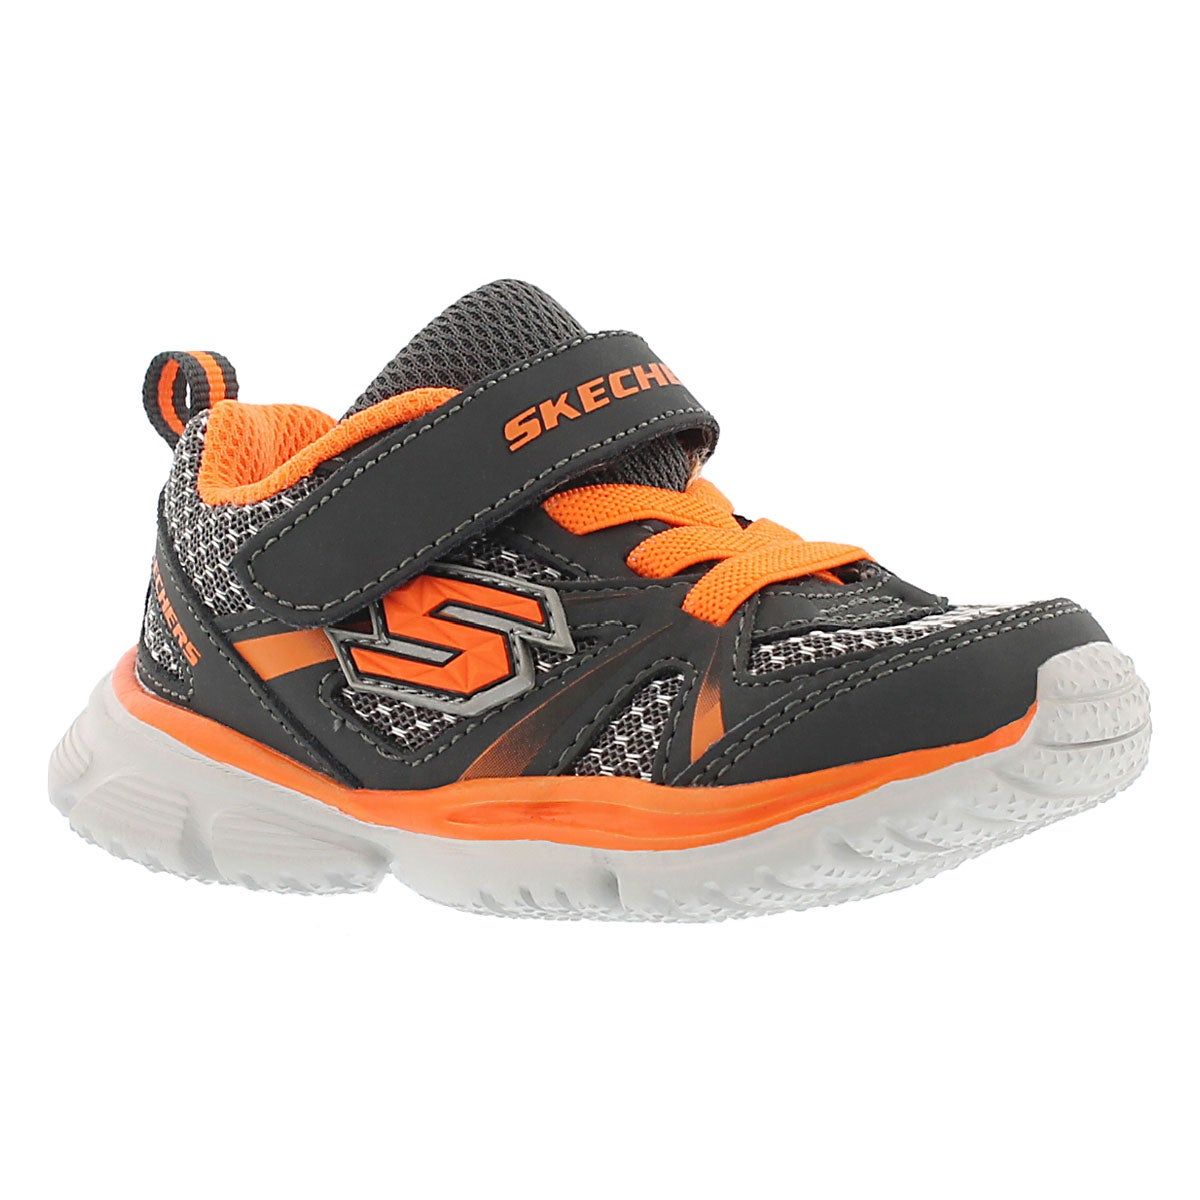 Infants' SPEEDEES DRIFTERZ grey/orange sneakers